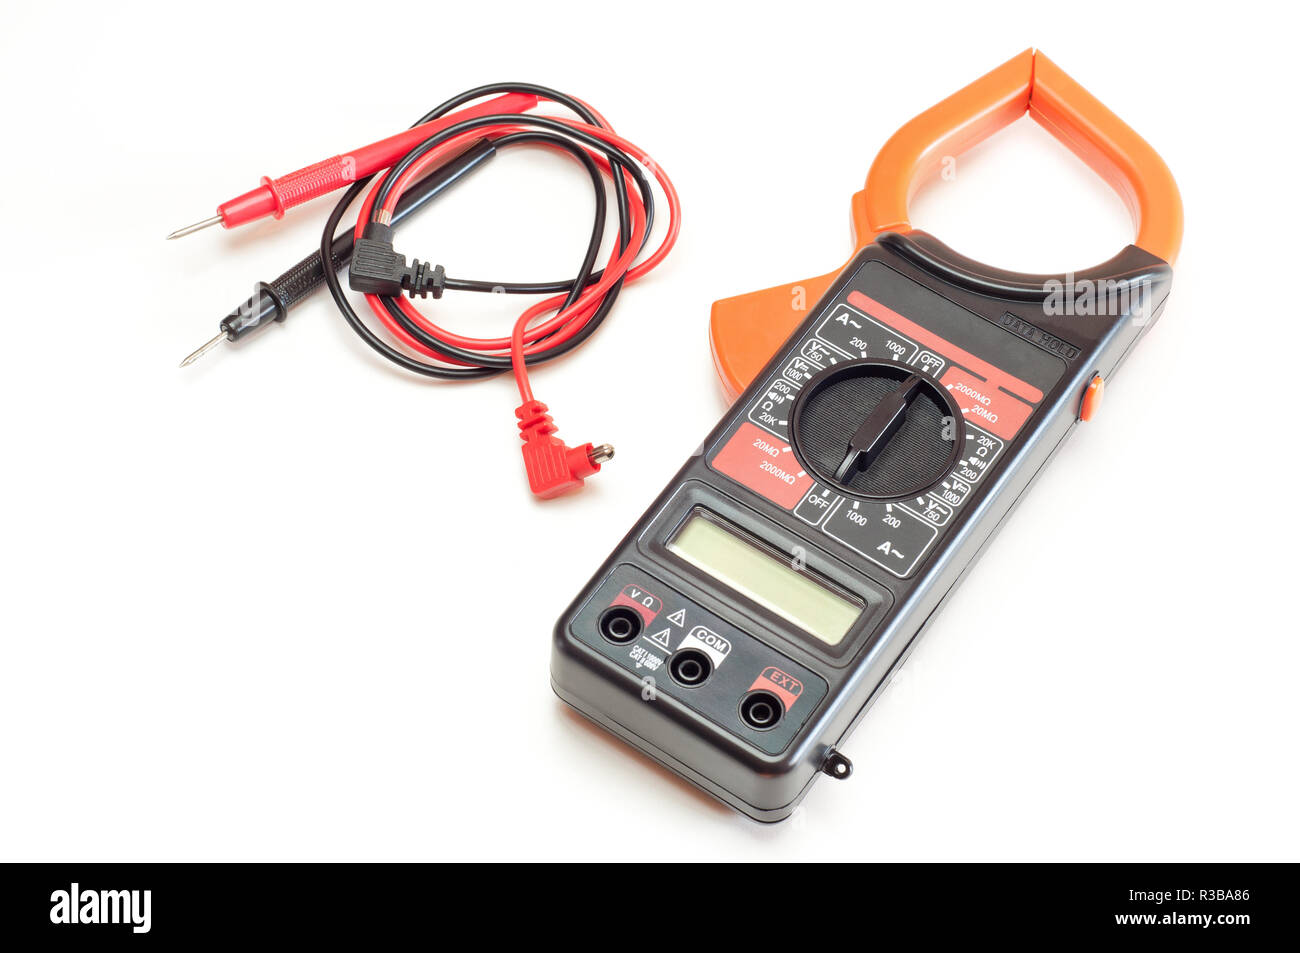 Black digital clamp meter with red and black cables, isolated - Stock Image